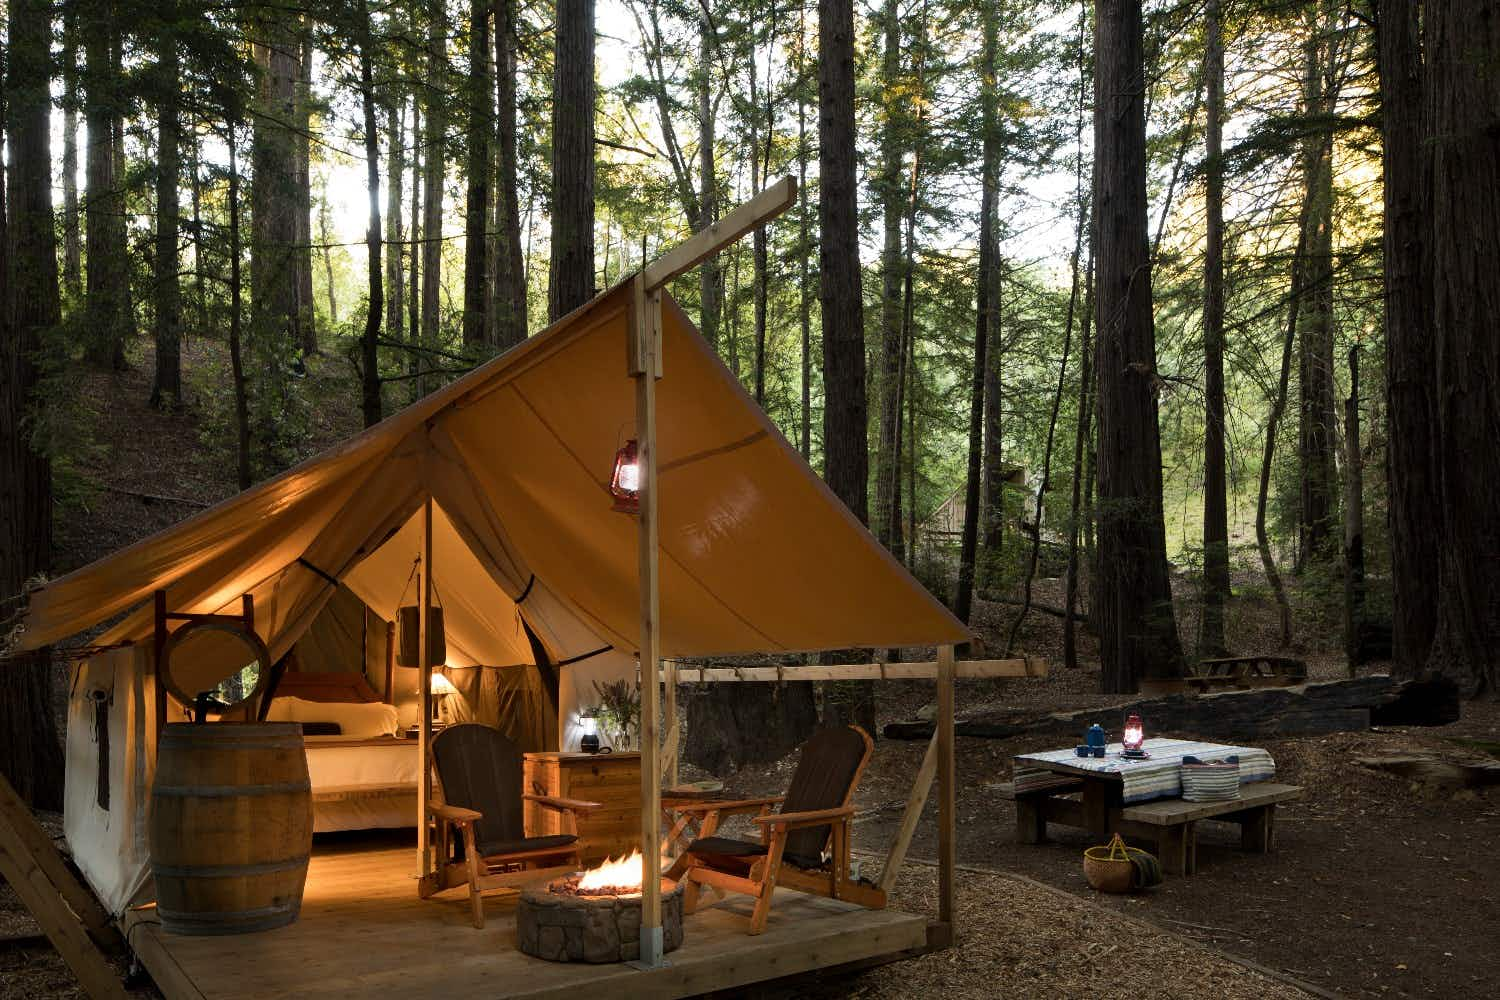 Inside the luxurious new glamping site in Big Sur, California